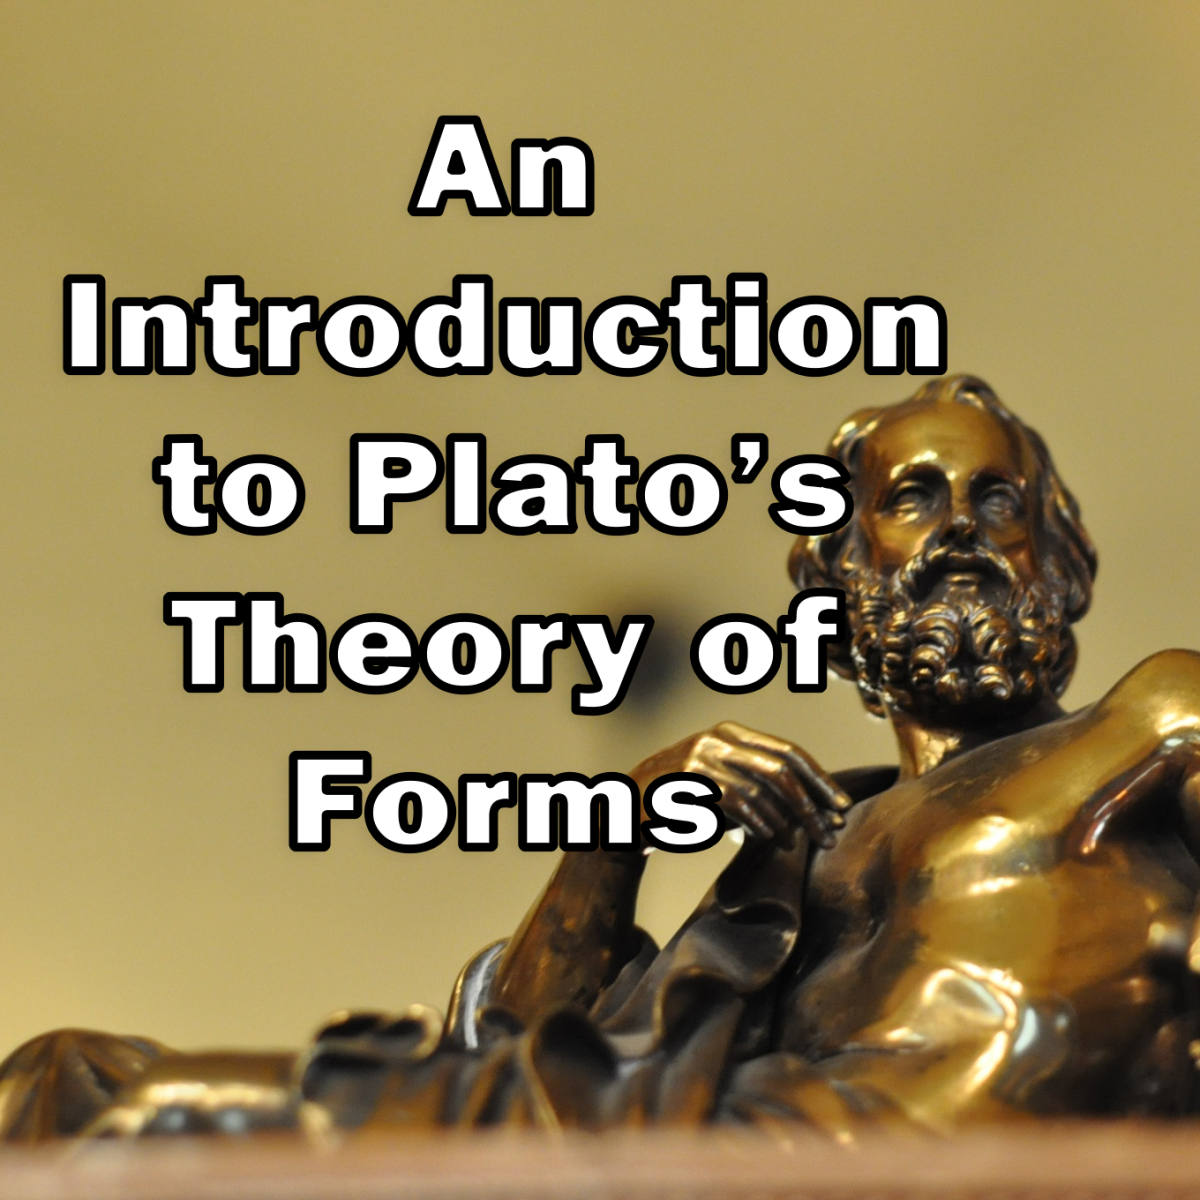 An Introduction to Plato's Theory of Forms